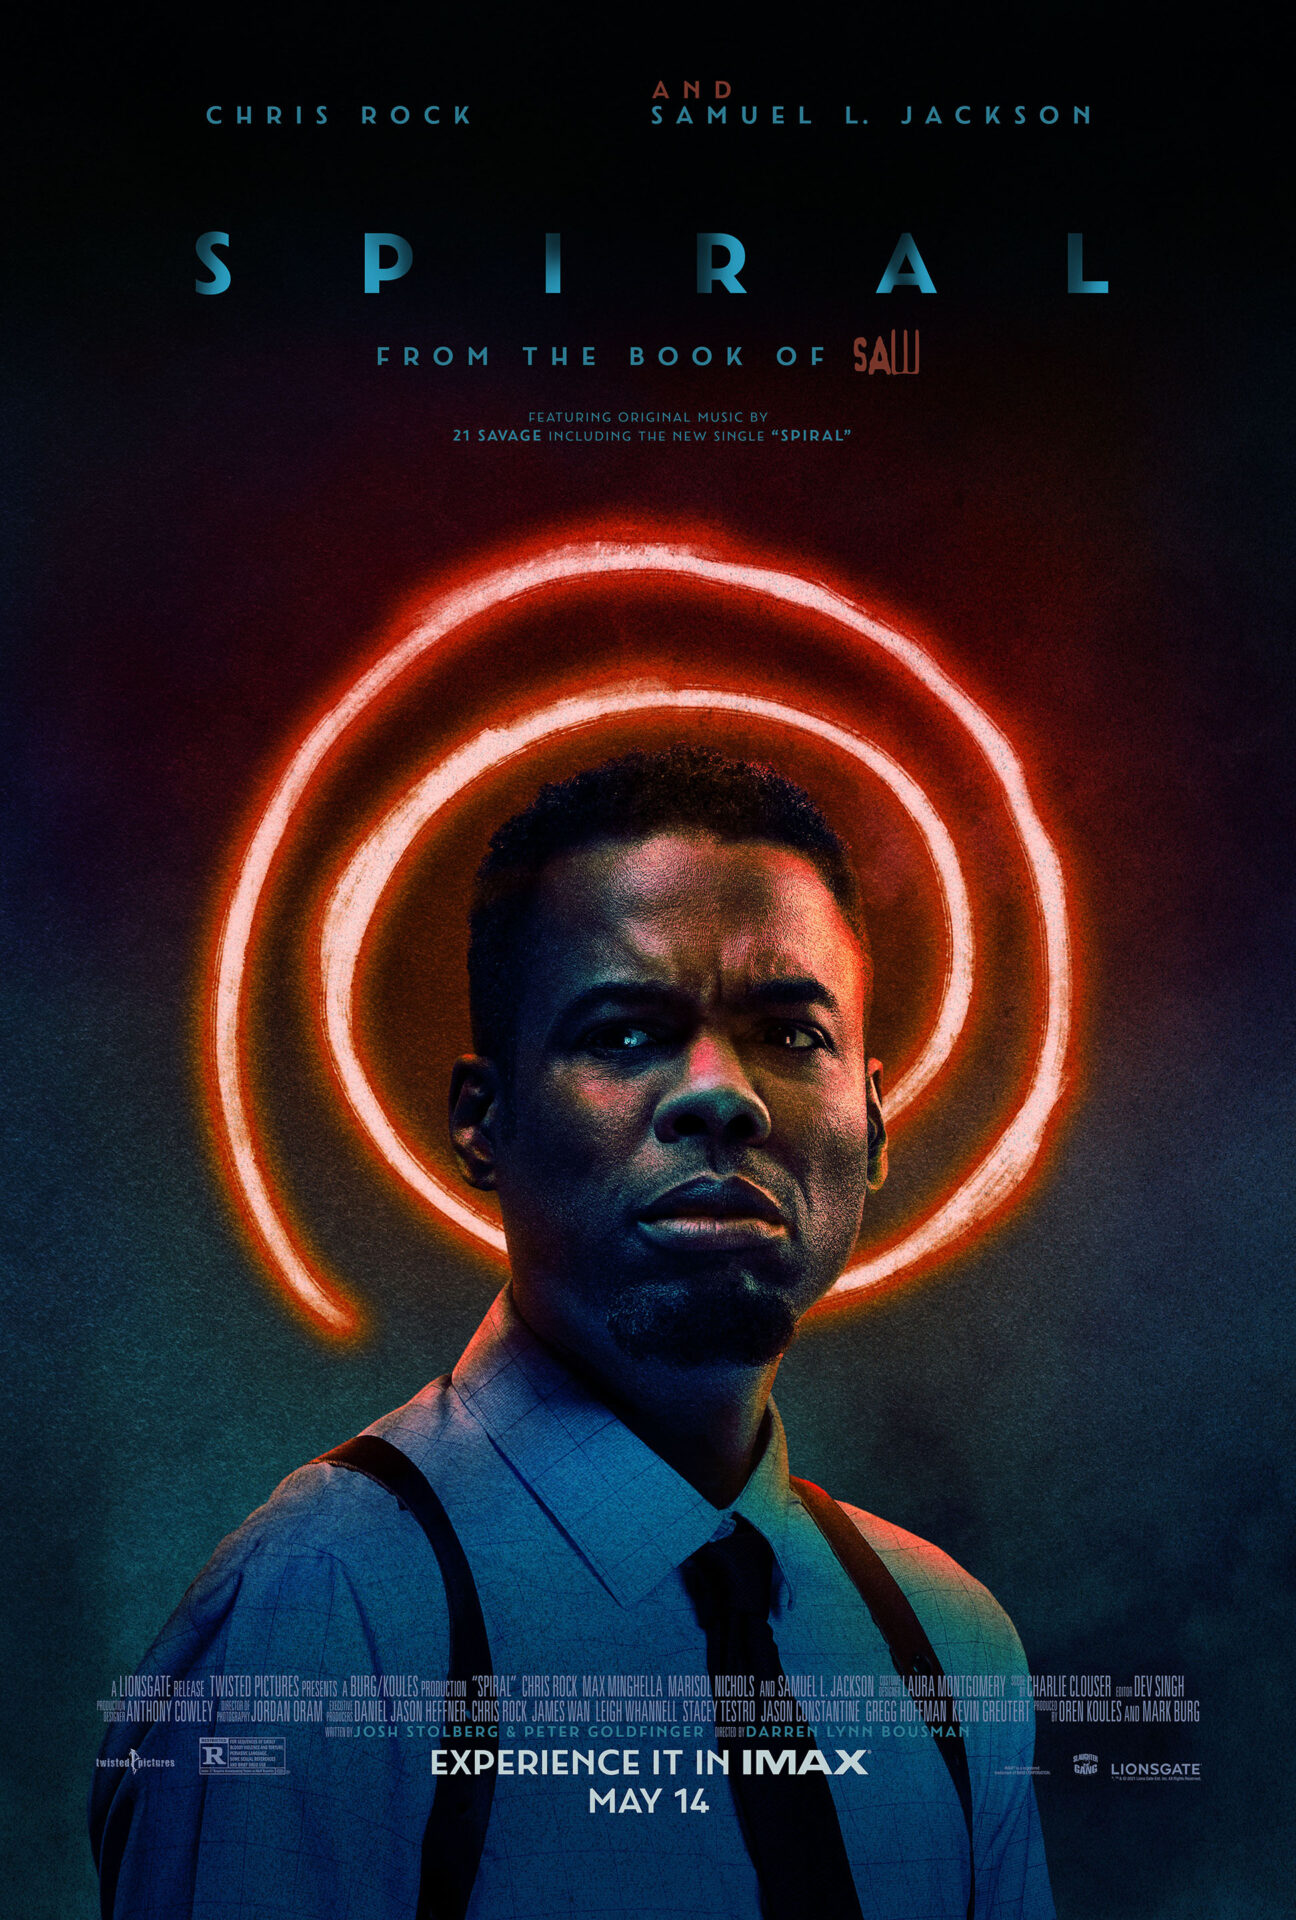 This is an image of the Spiral movie poster. Chris Rock is looking slightly to the left and behind him is an orange, lit up spiral.